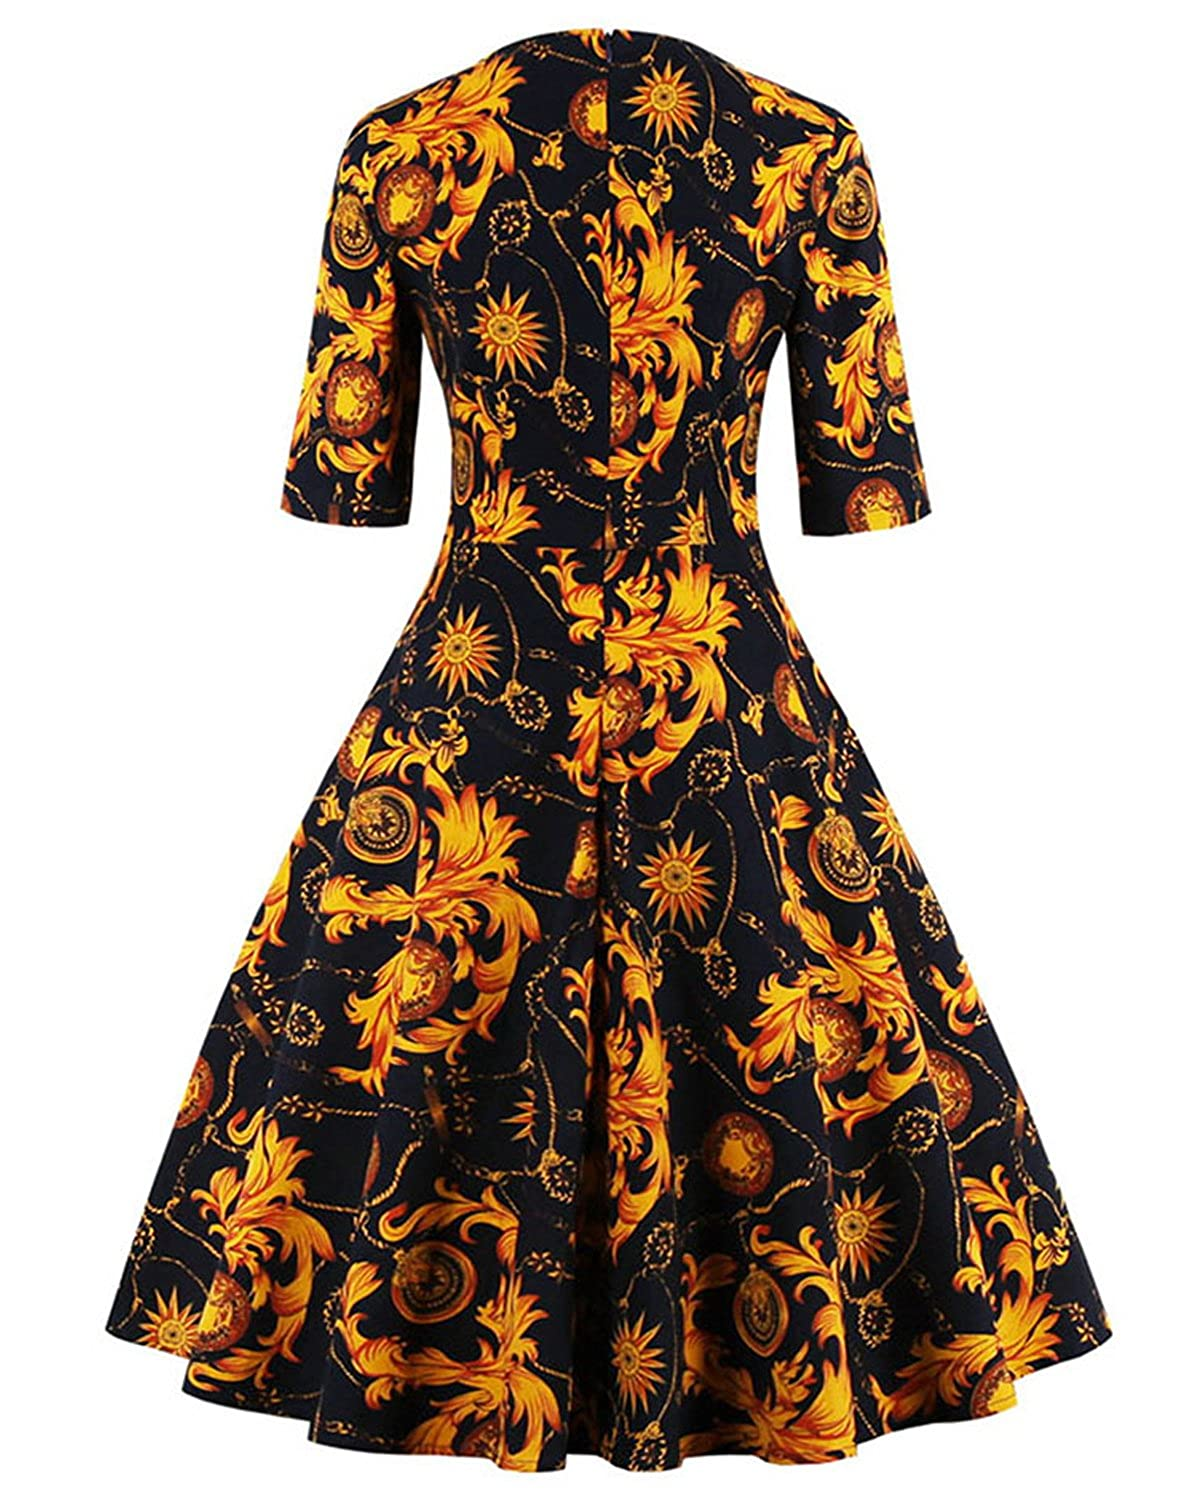 ZAFUL Women\'s 1950s Retro Vintage Floral 3/4 Sleeve Party Cocktail ...